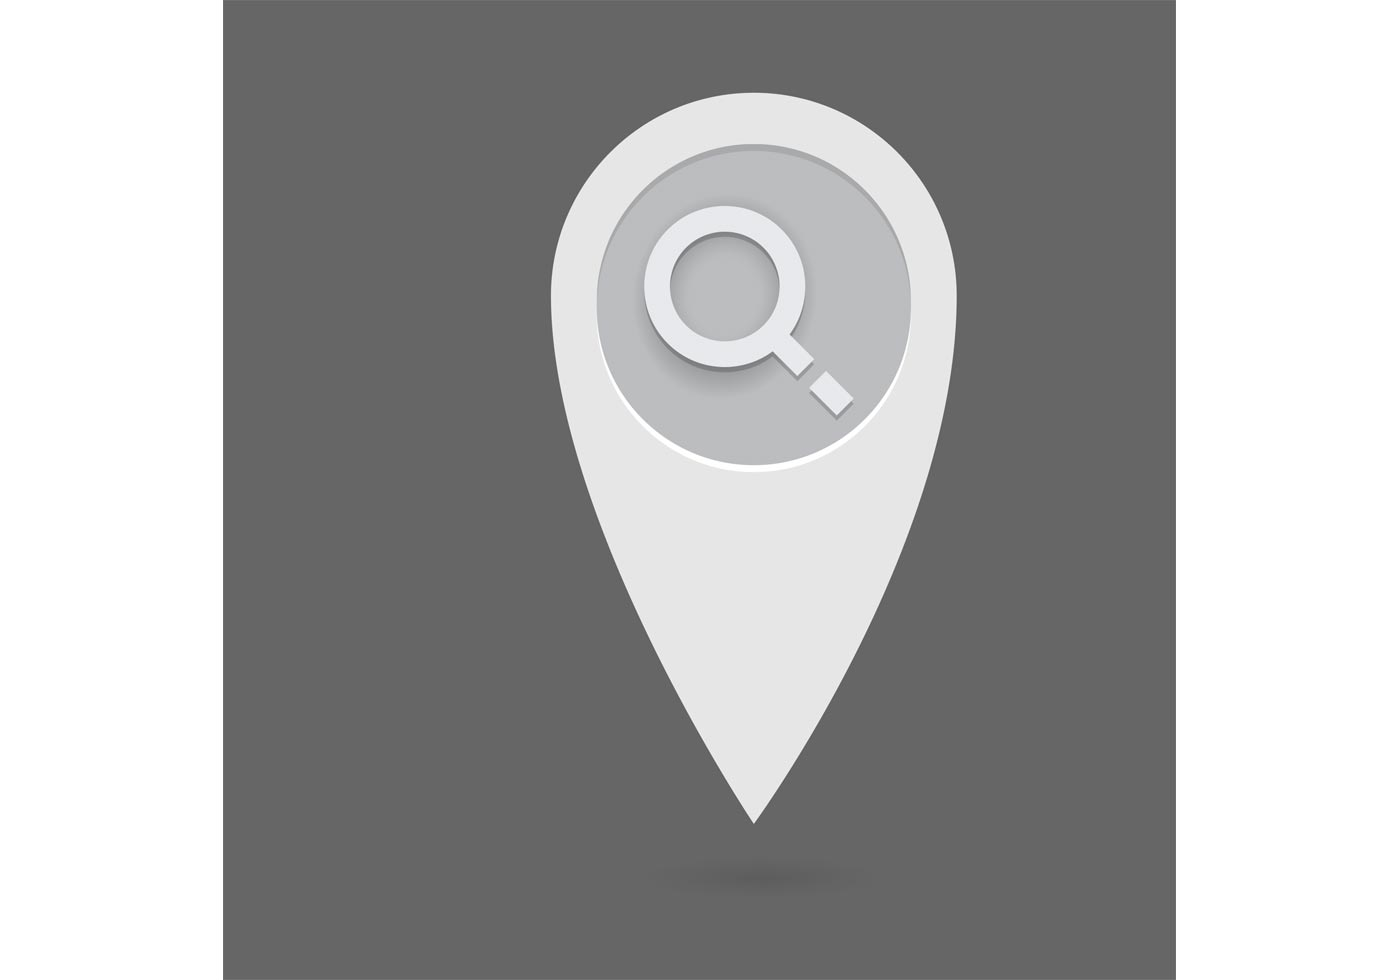 Free Vector Of The Day #171: Search Icon